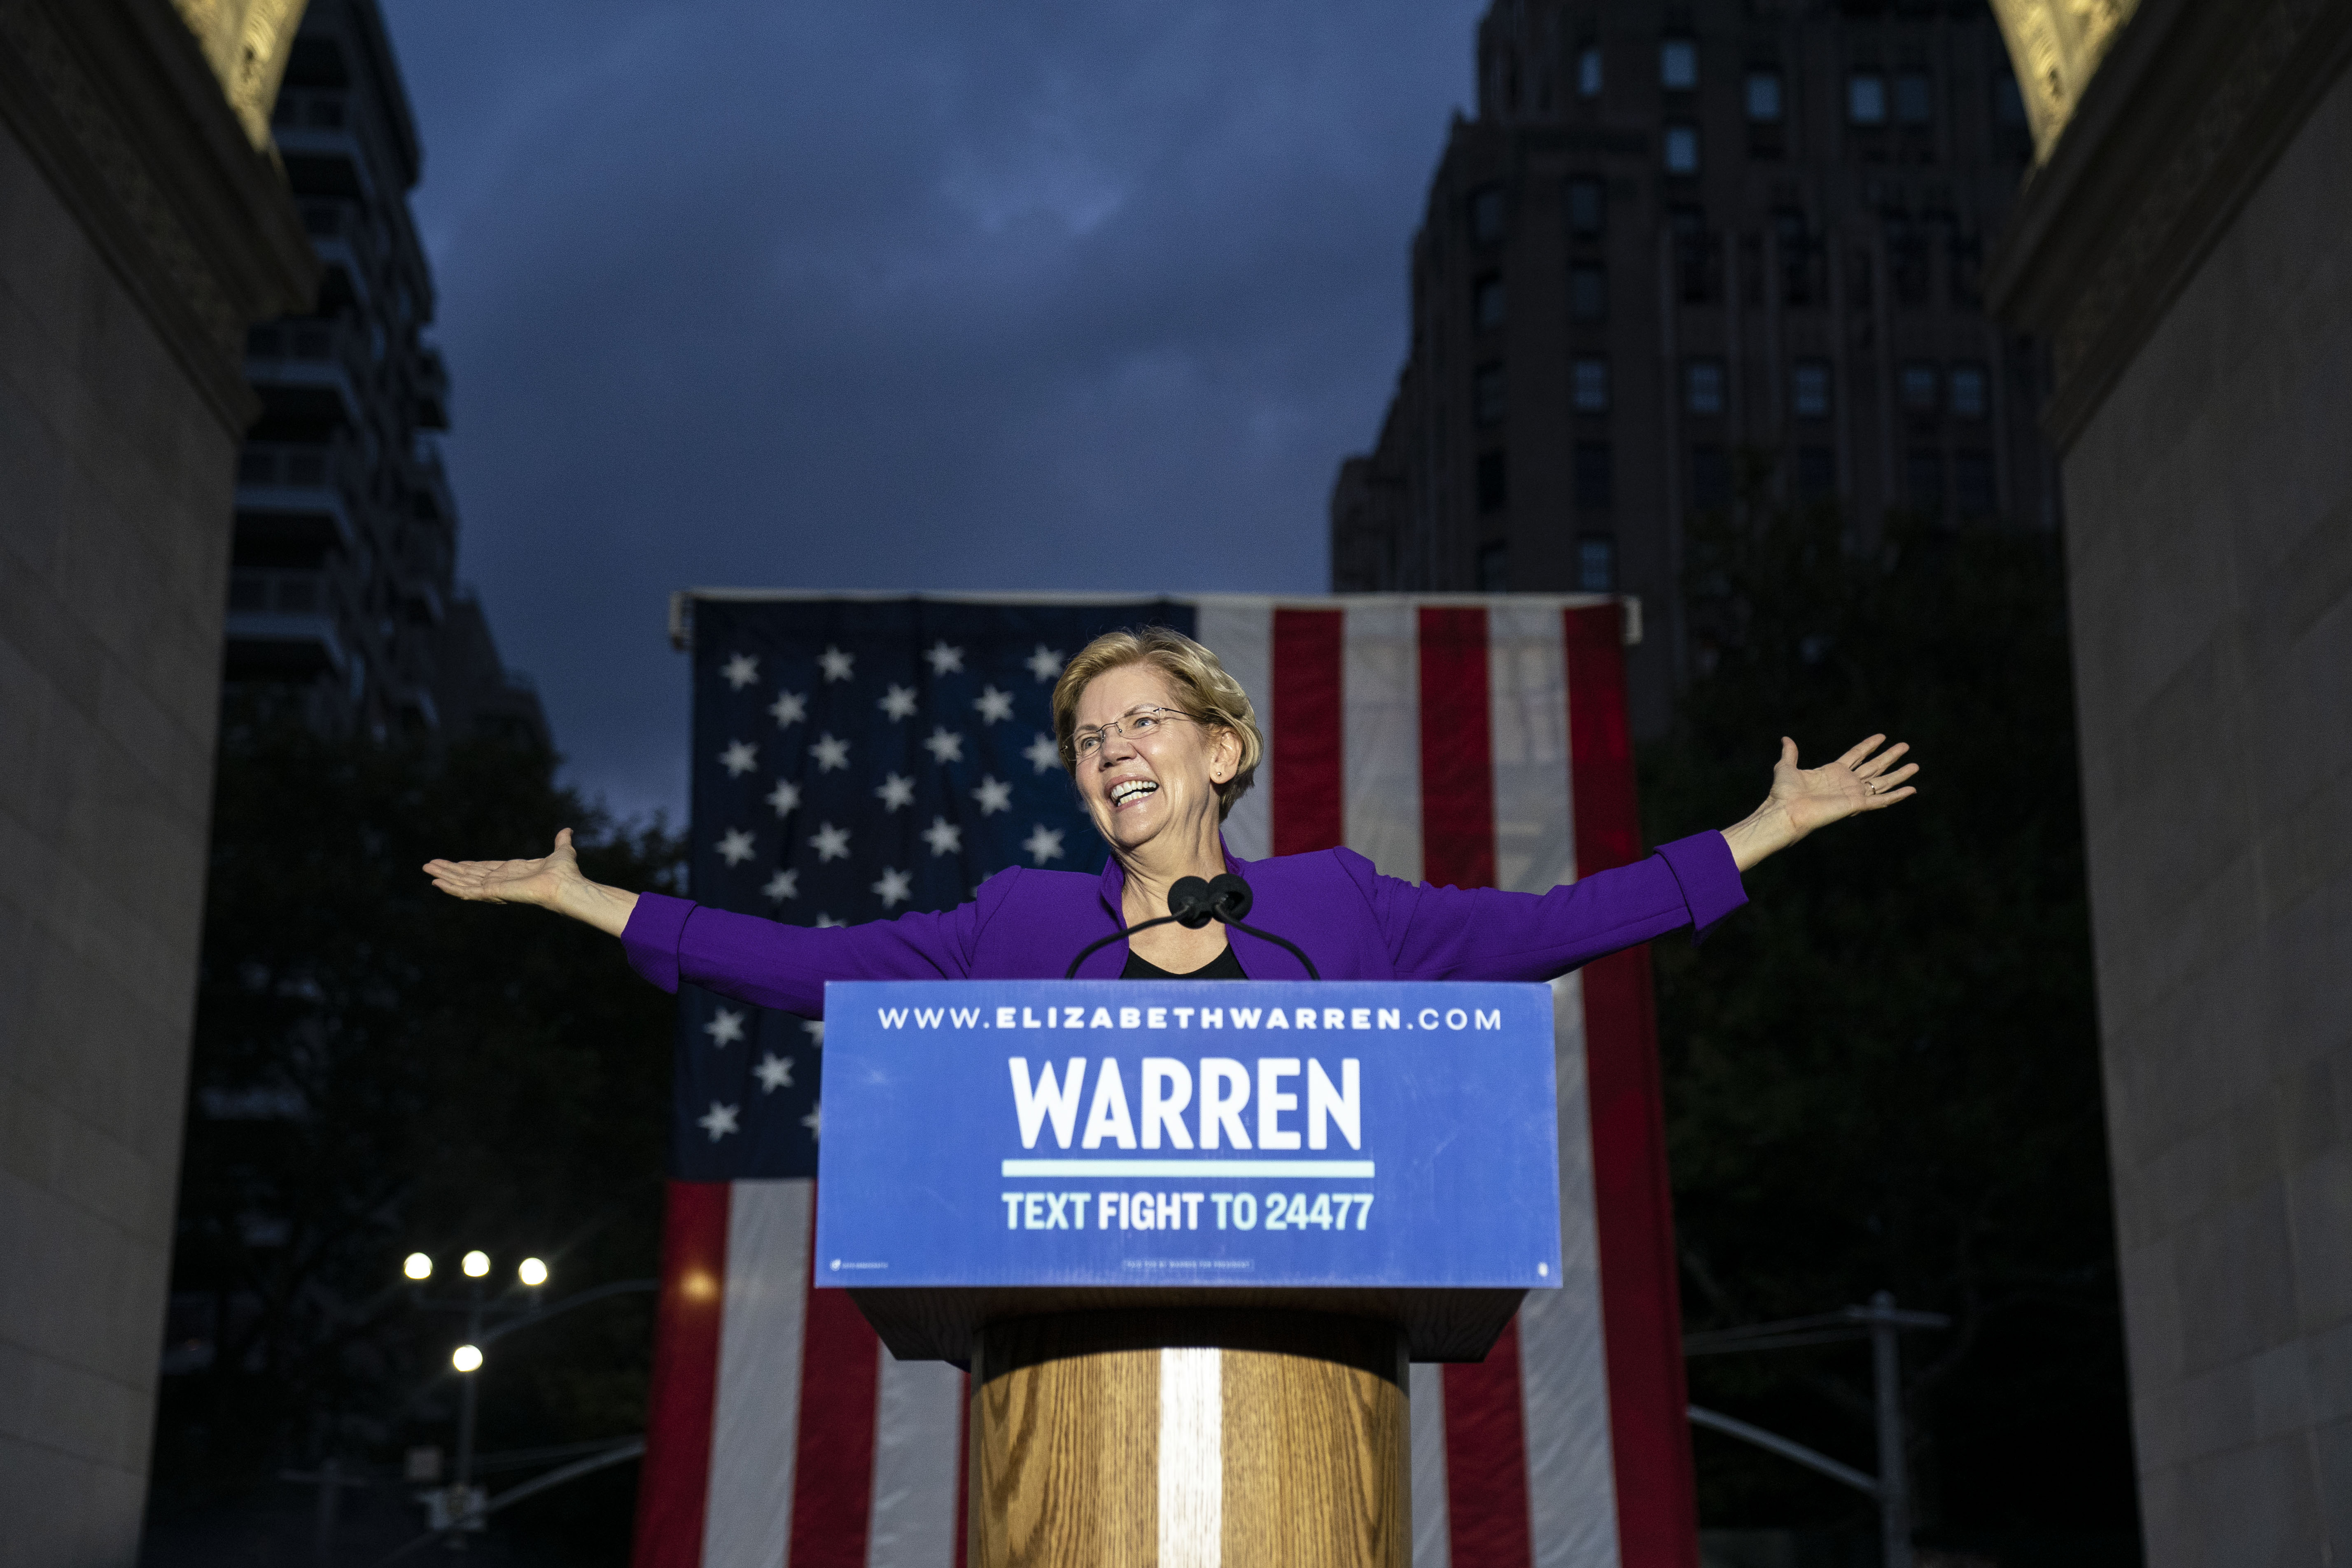 Democratic presidential candidate Sen. Elizabeth Warren (D-MA) arrives for a rally in Washington Square Park on September 16, 2019 in New York City.